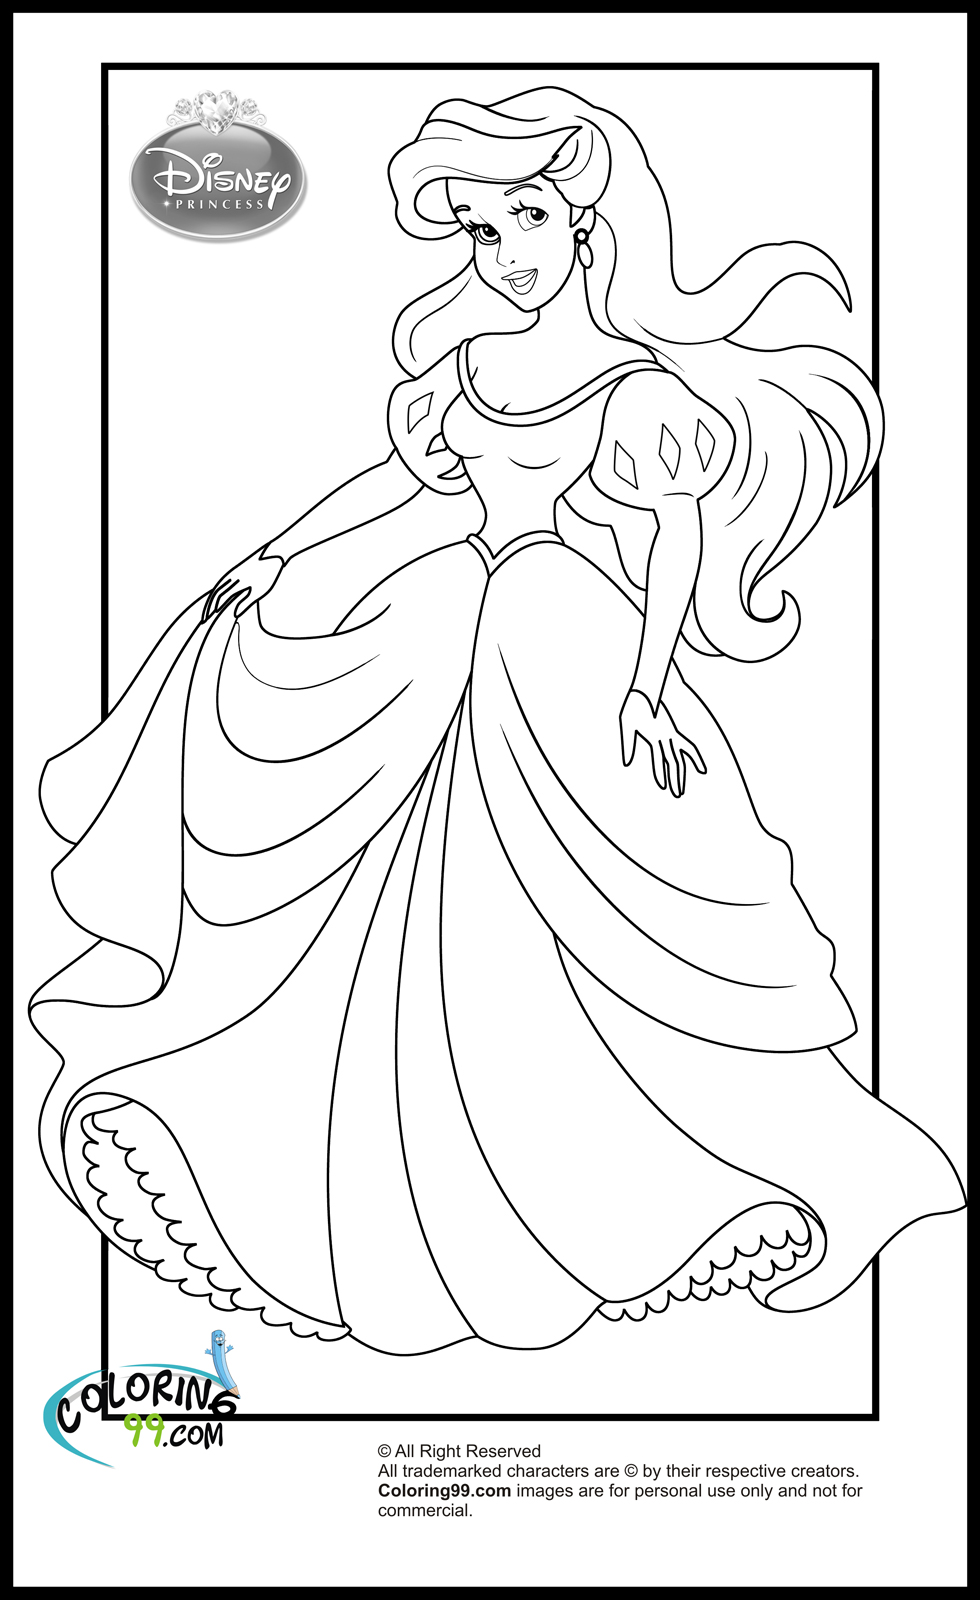 Disney Princess Coloring Pages Minister Coloring Princess Coloring Books Free Coloring Sheets